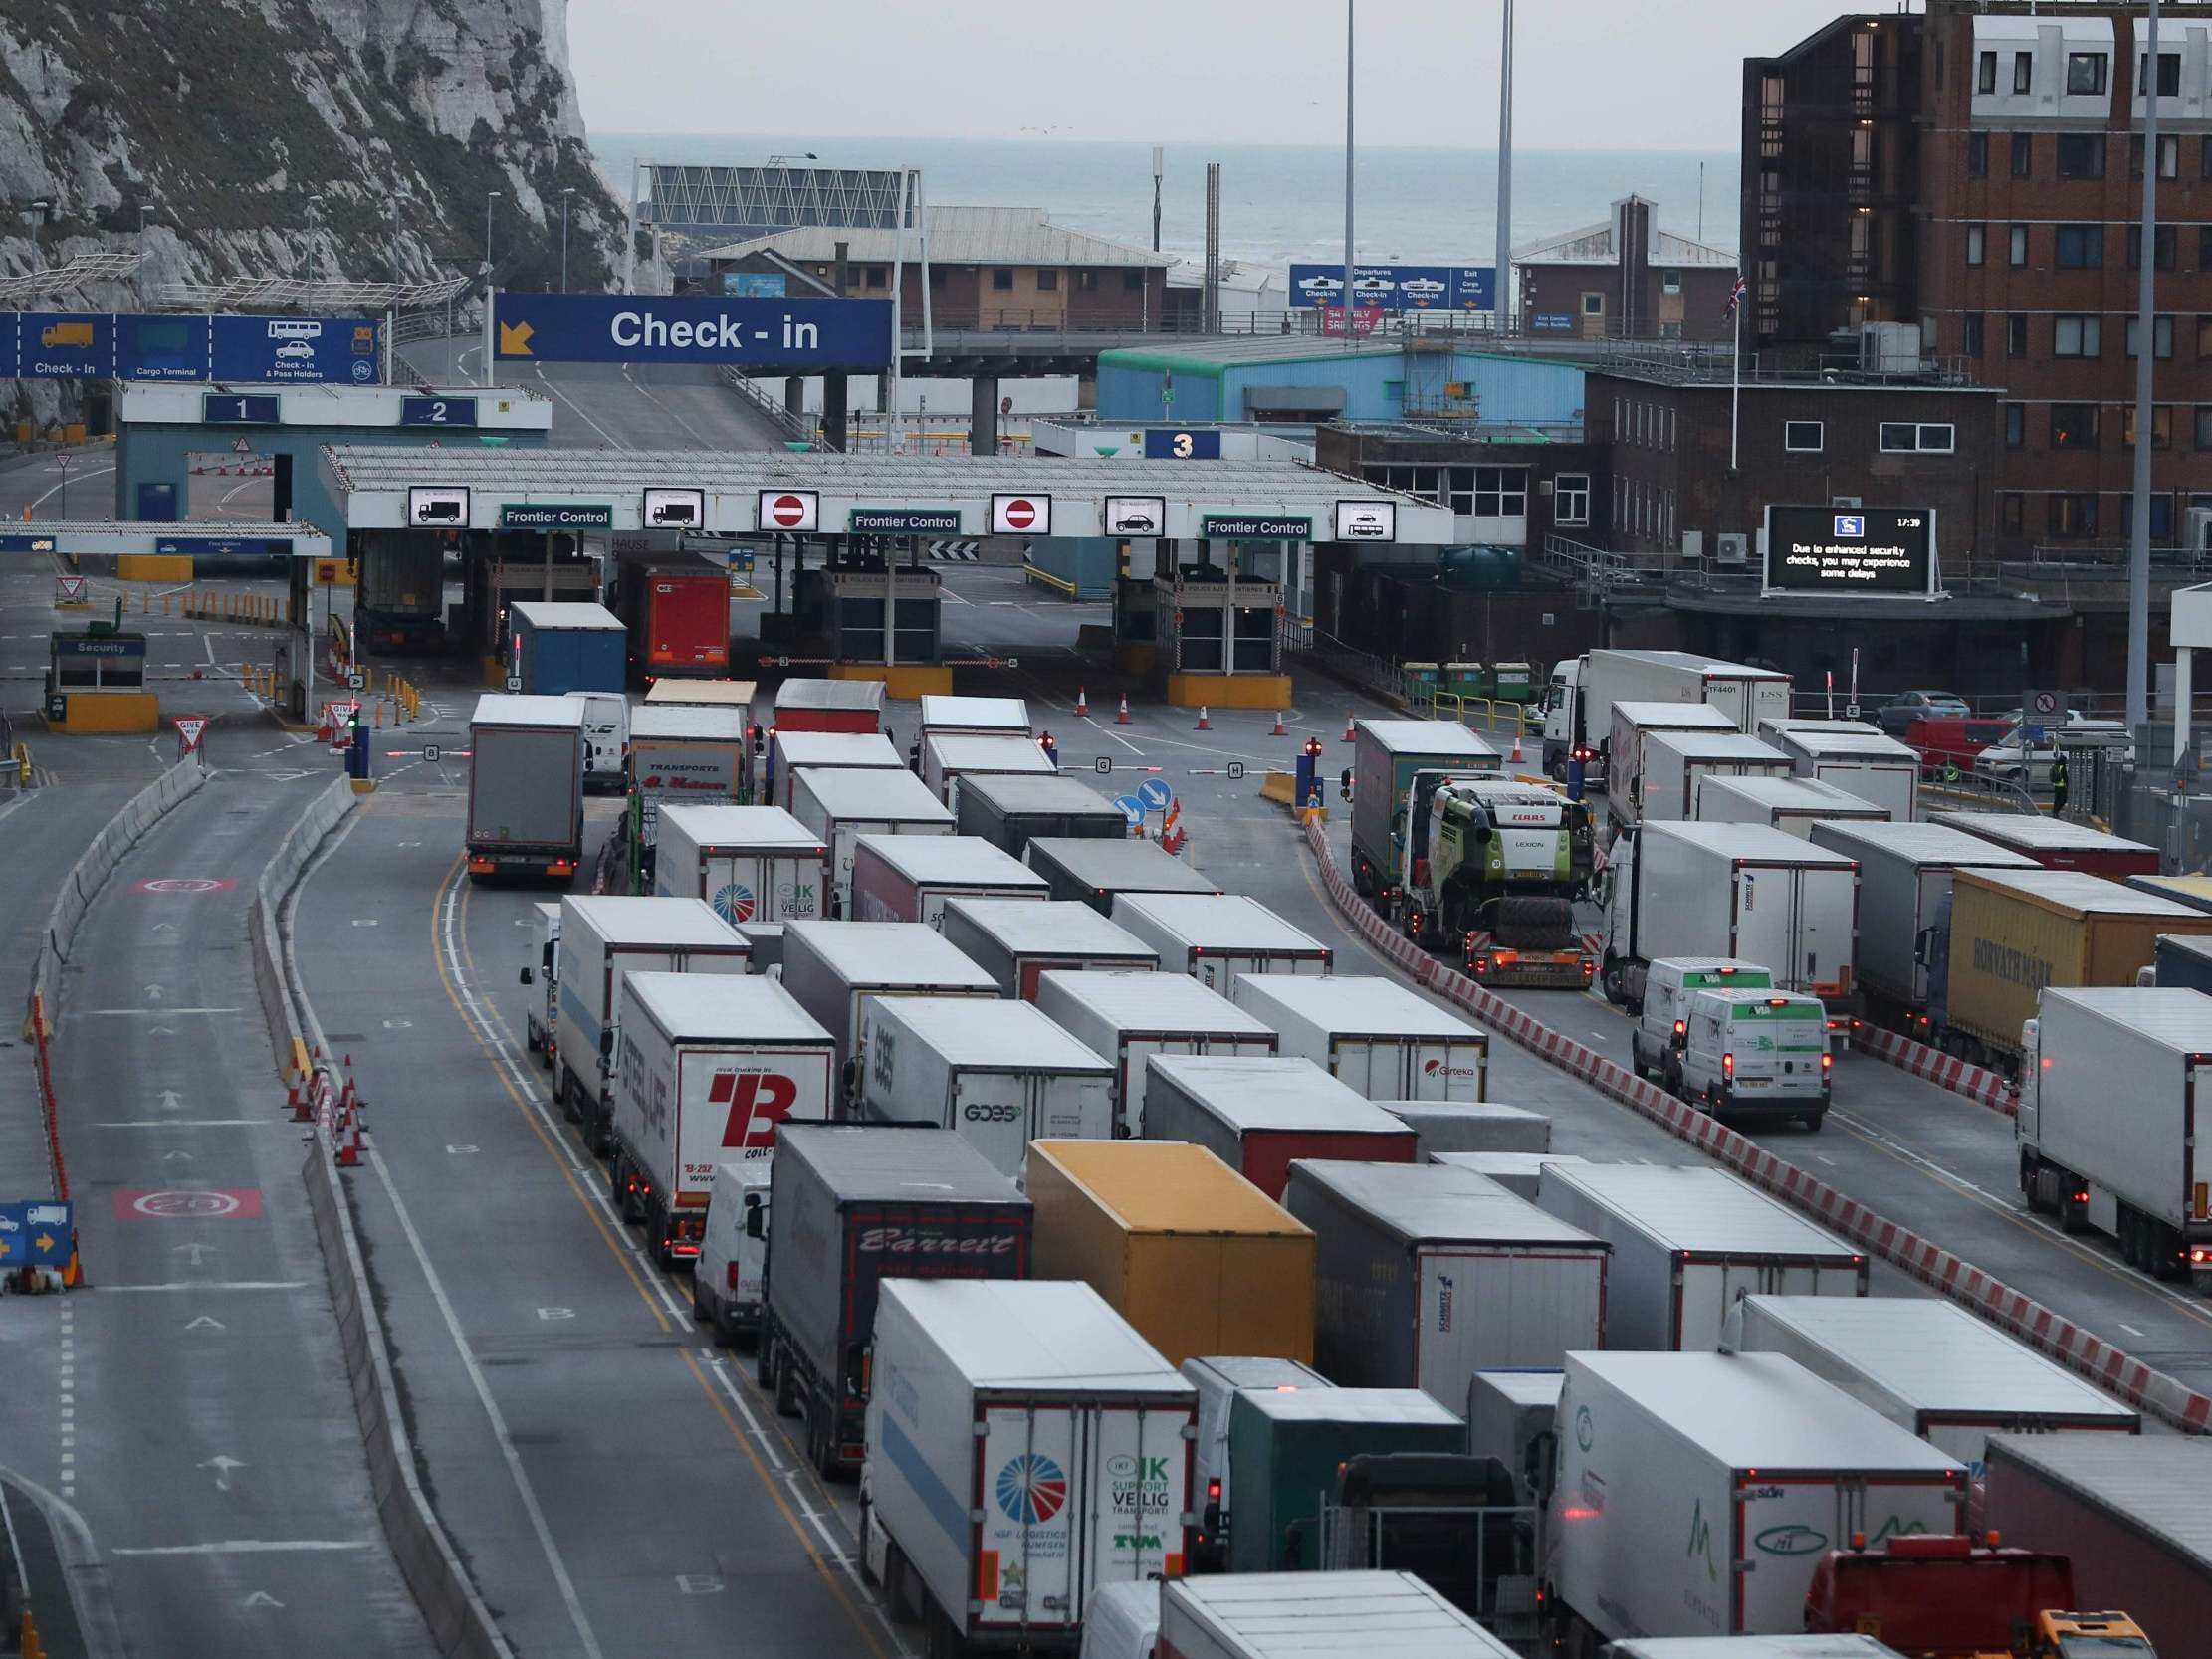 No-deal Brexit: Tens of thousands of lorries with 'wrong paperwork' to be turned away at ports, secret government documents reveal